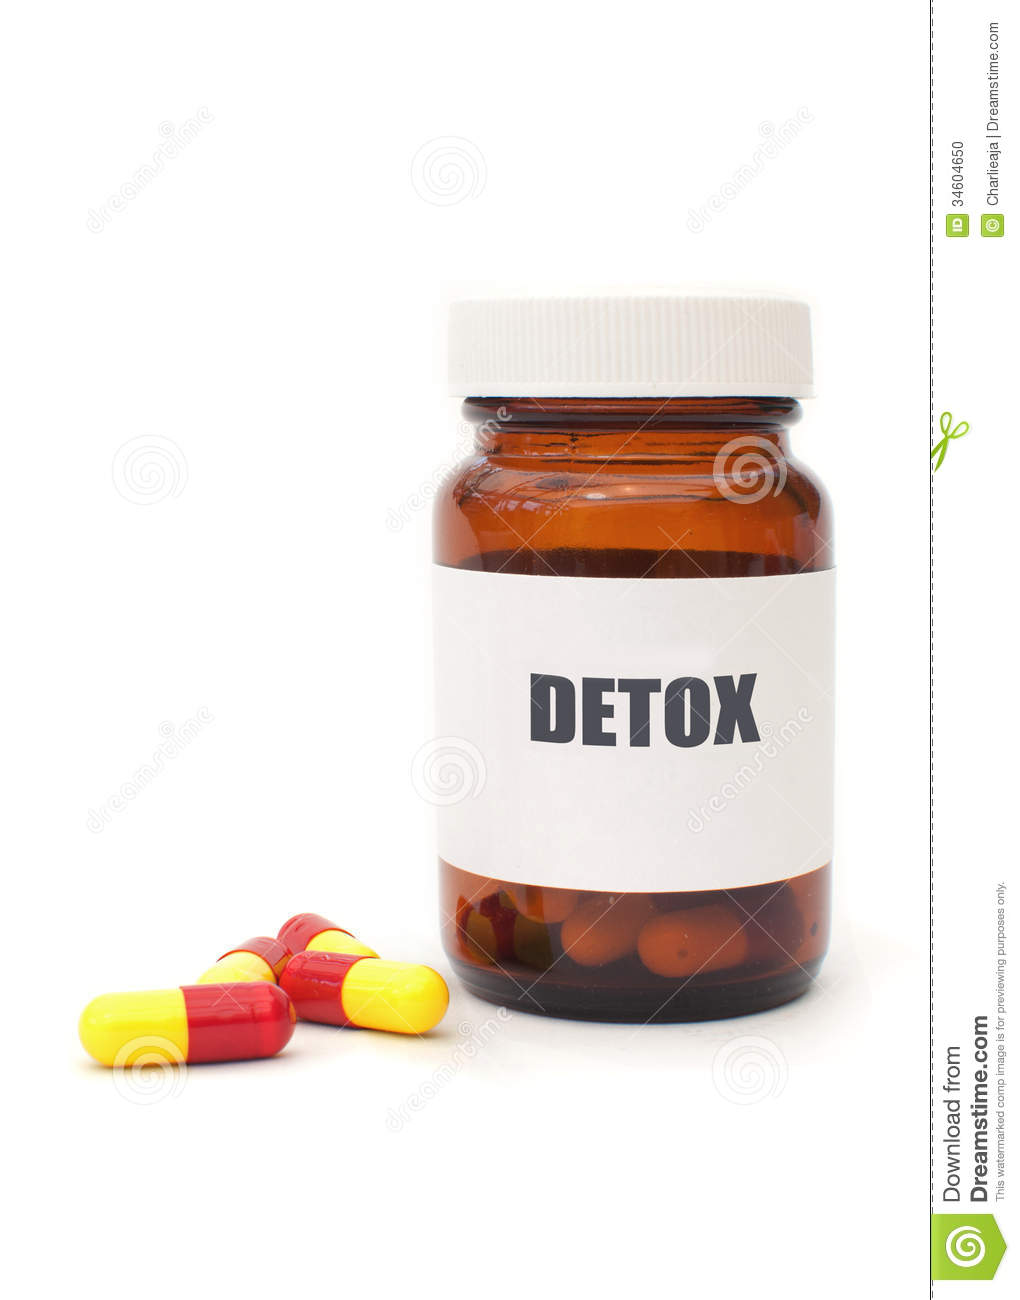 Detox pills stock photo. Image of cleansing, health ...